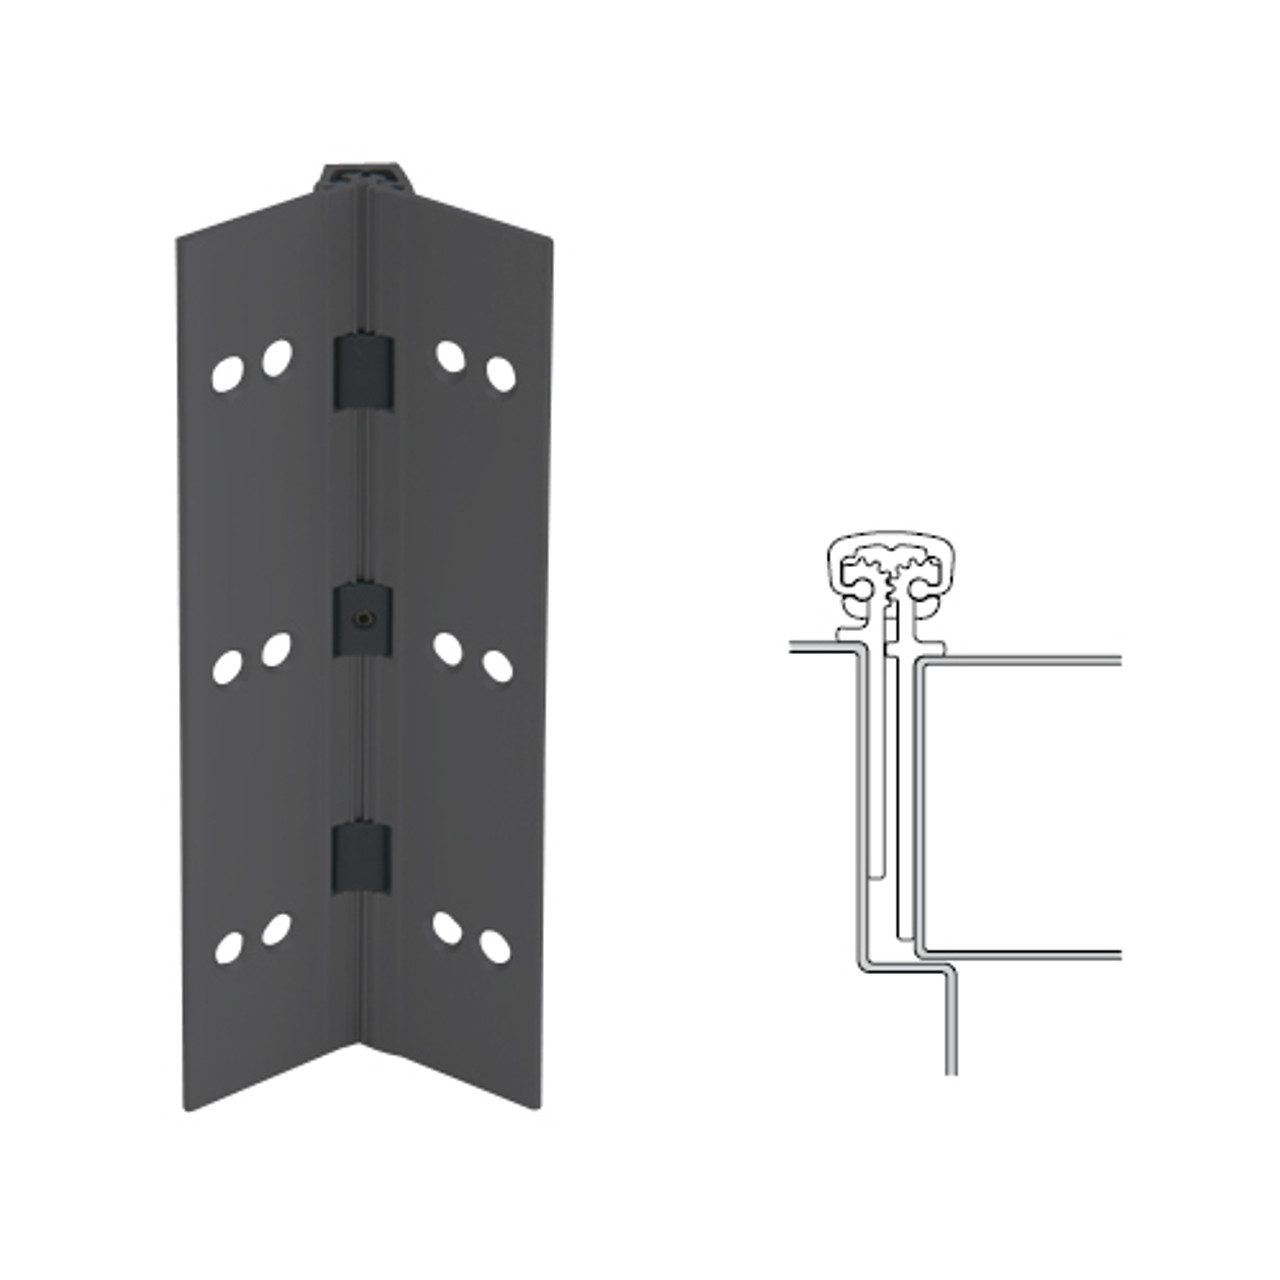 026XY-315AN-95 IVES Full Mortise Continuous Geared Hinges in Anodized Black